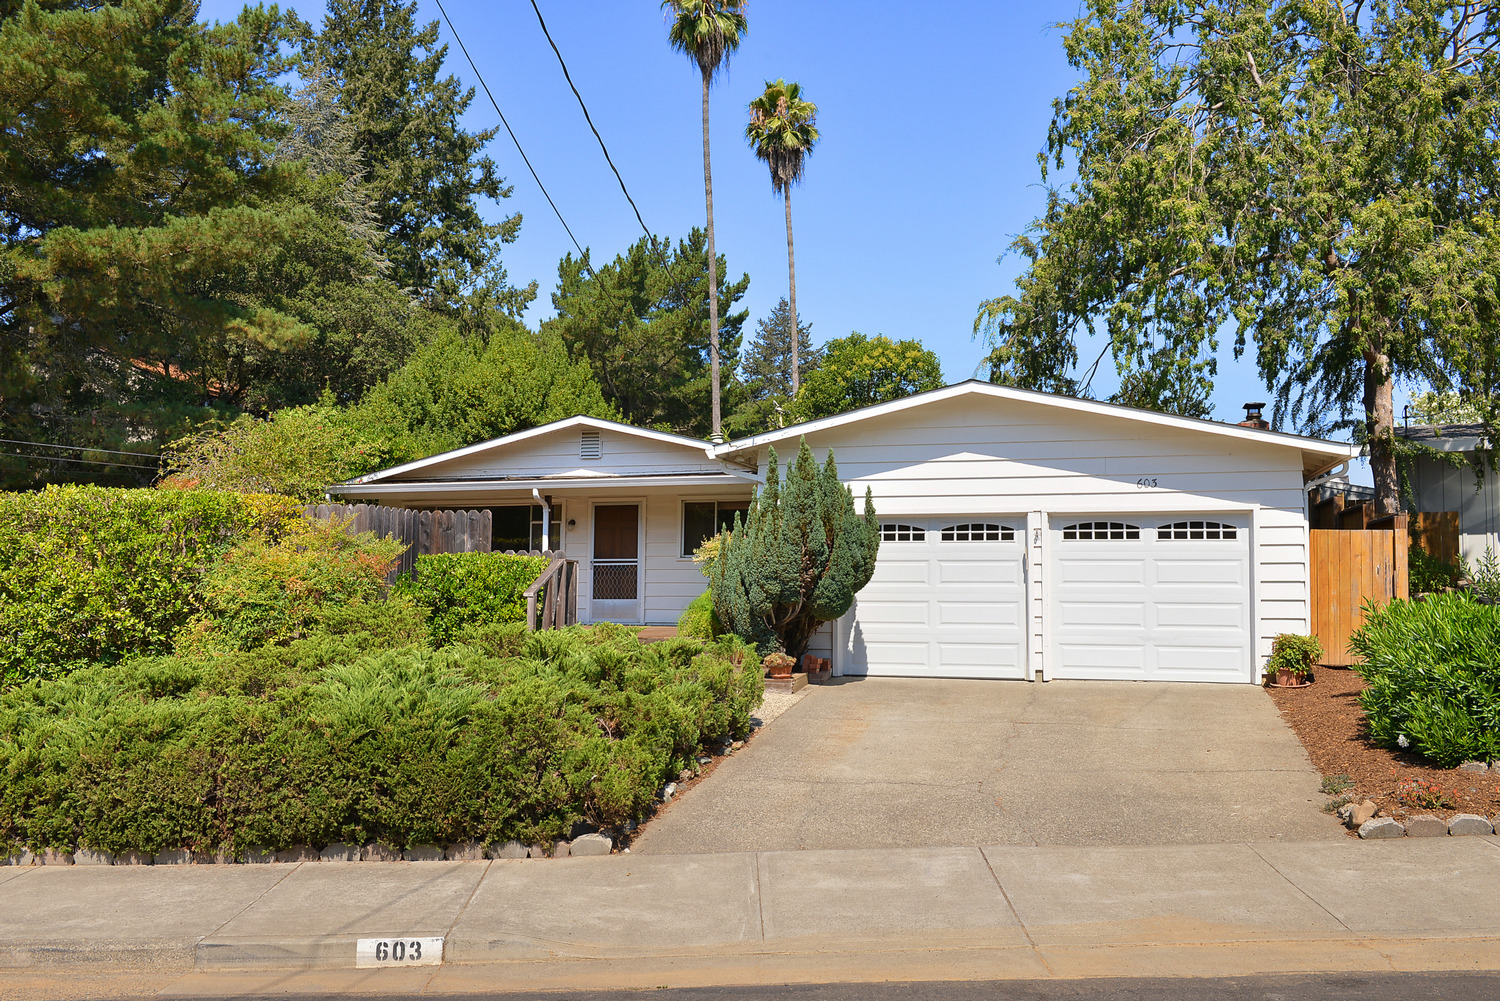 A rare find! Not on the market since 1979, this single story, 3 bedroom and 2 bathroom home offers location and lots of potential. Situated on a large corner lot, amenities include a 2-car garage, covered patio, and family room with fireplace. Doll up this diamond in the rough and make it your own!